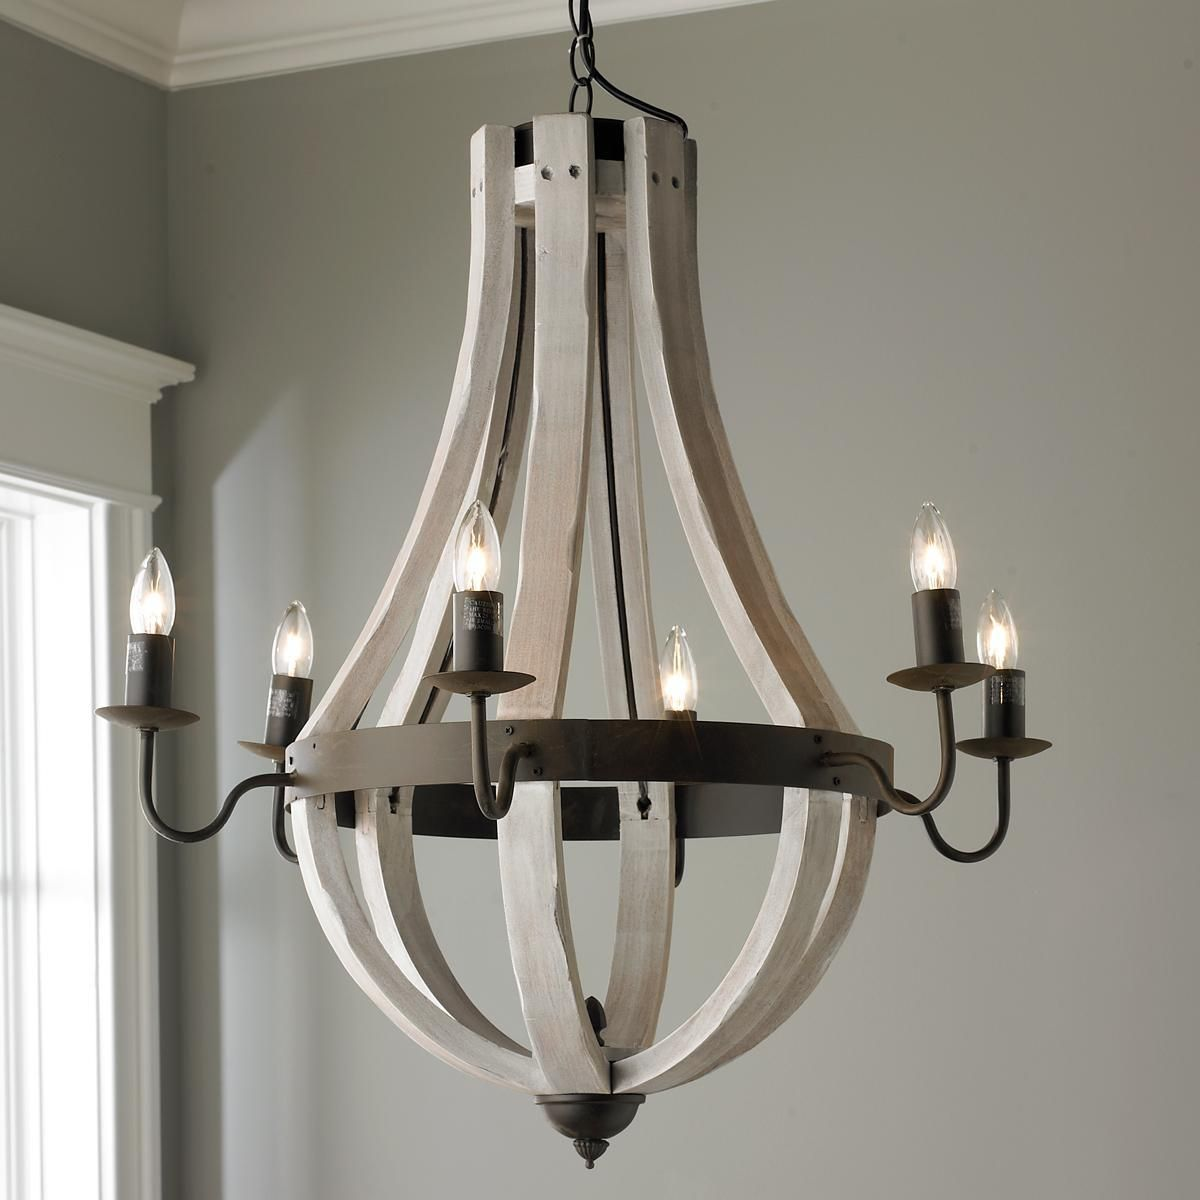 wine shades chandelier wooden stave of pin light barrel